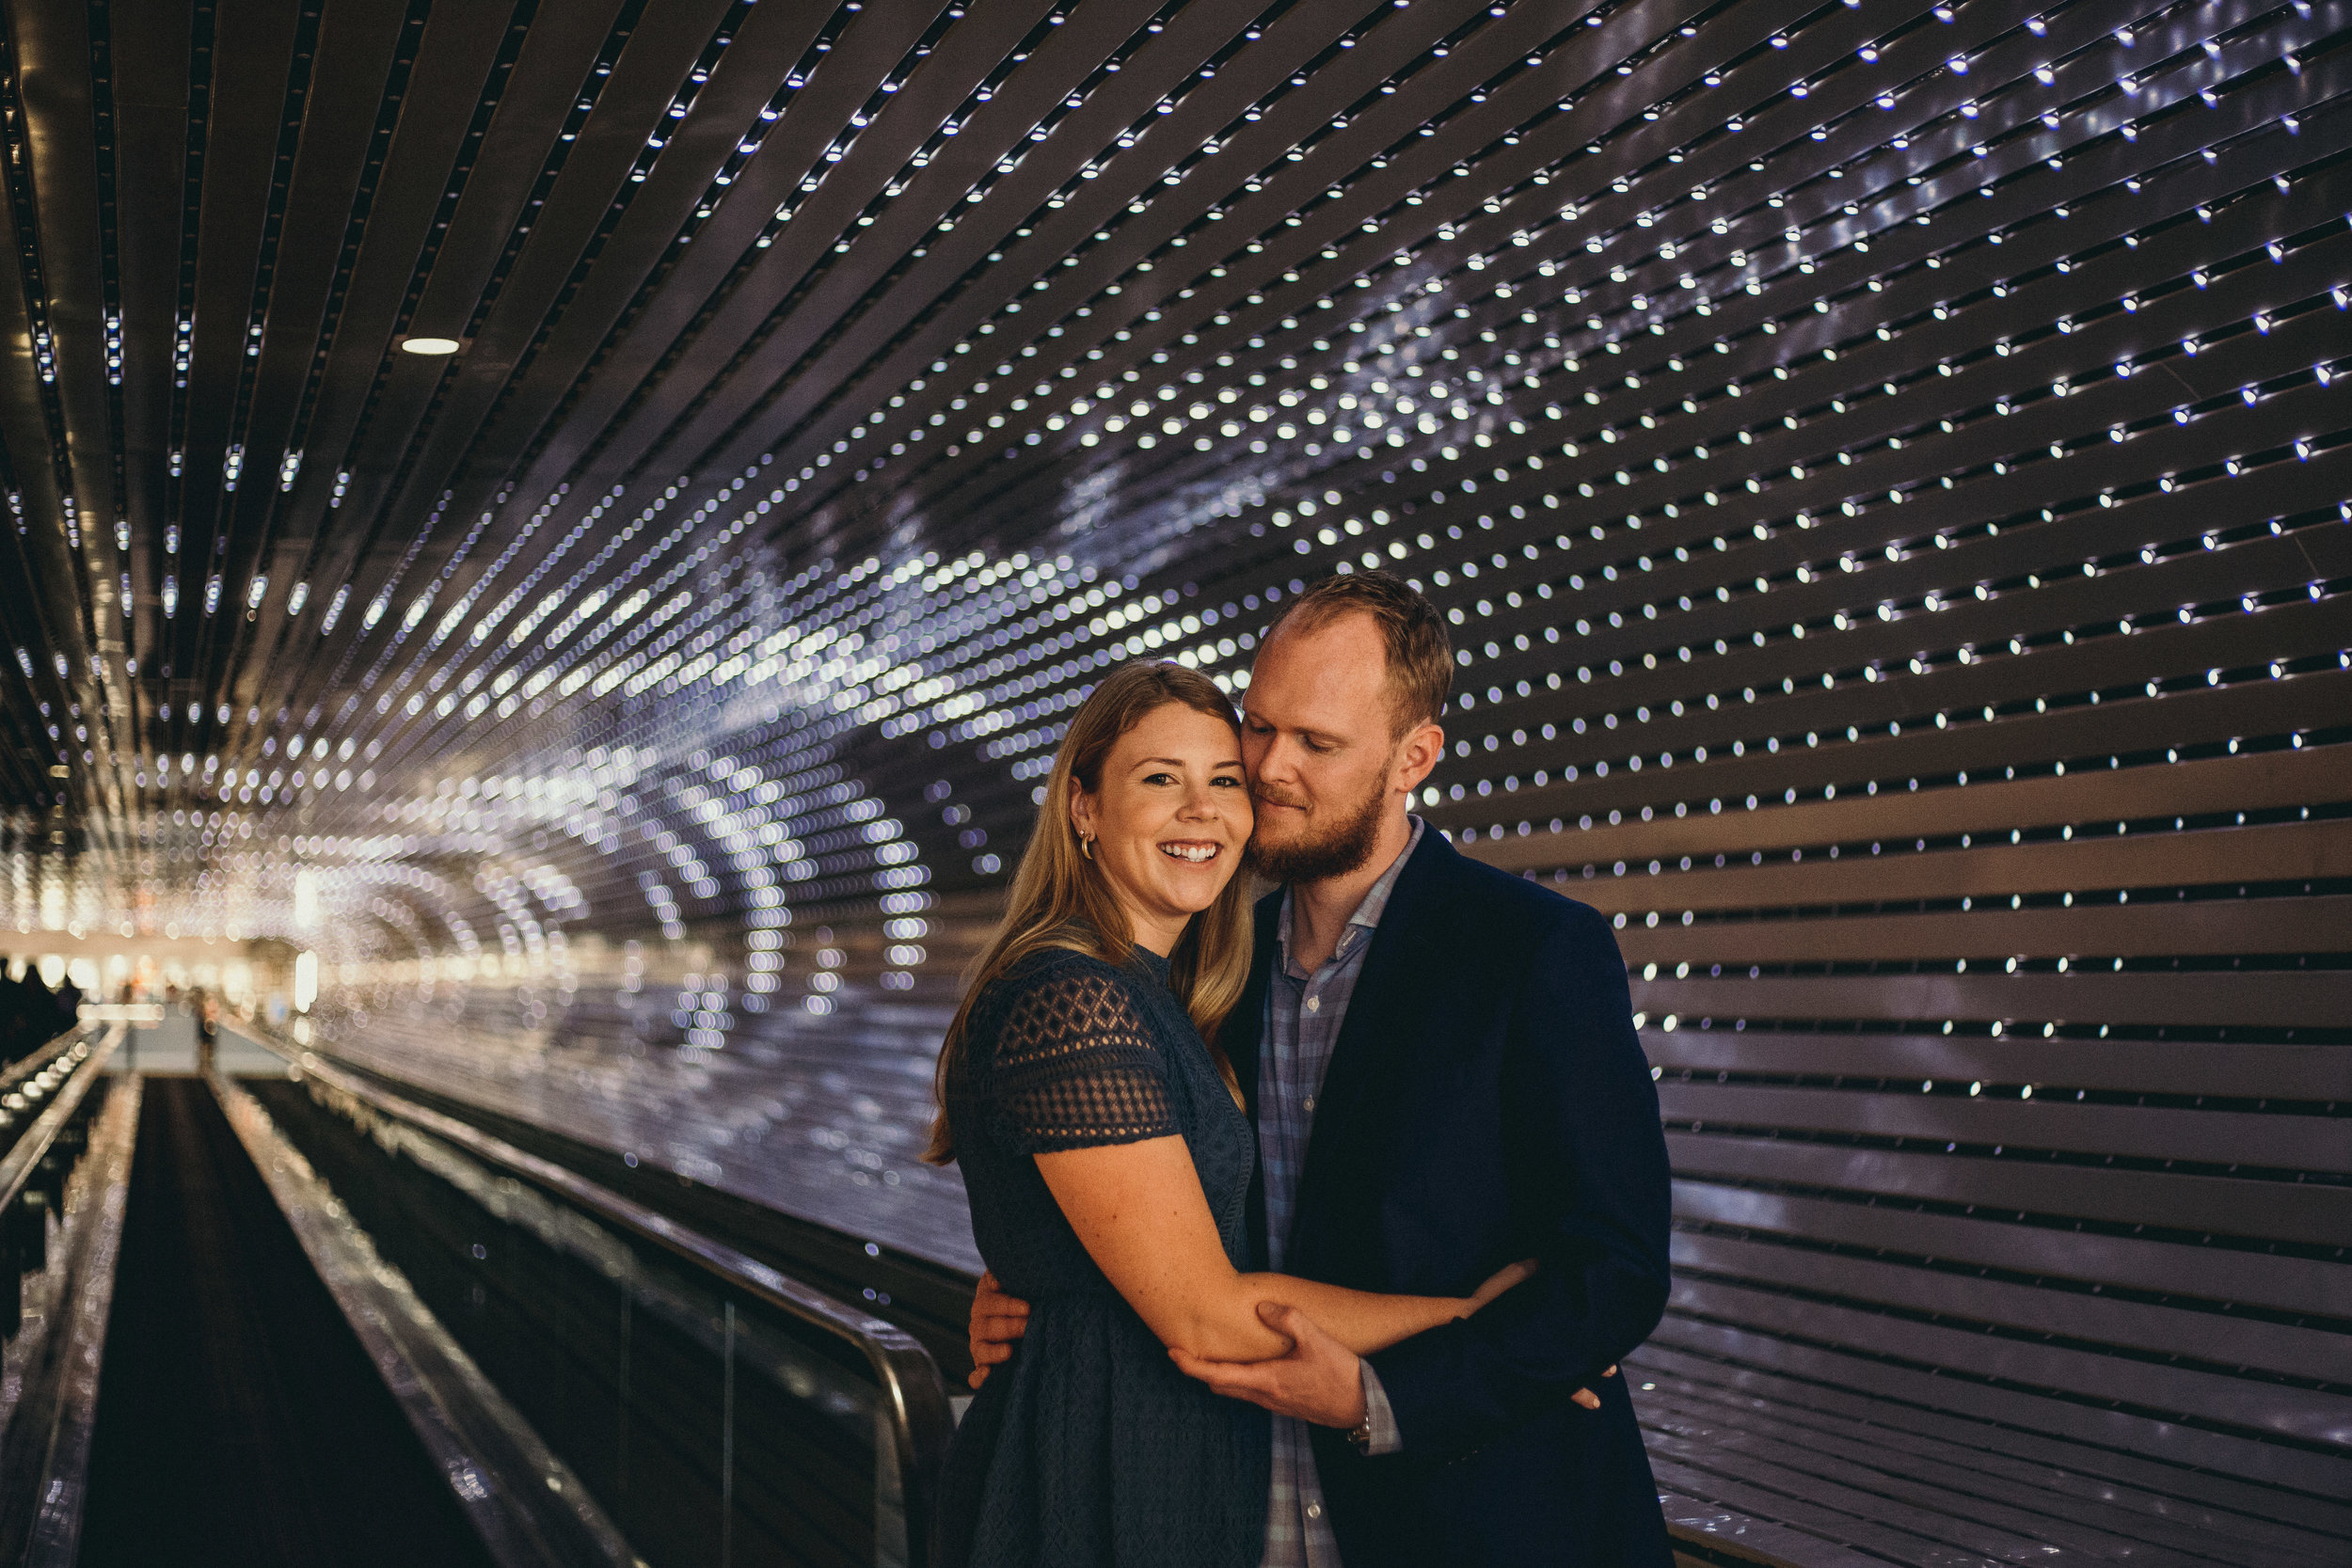 PANGTOGRAPHY_KJ-44.JPG WASHINGTON DC ENGAGEMENT